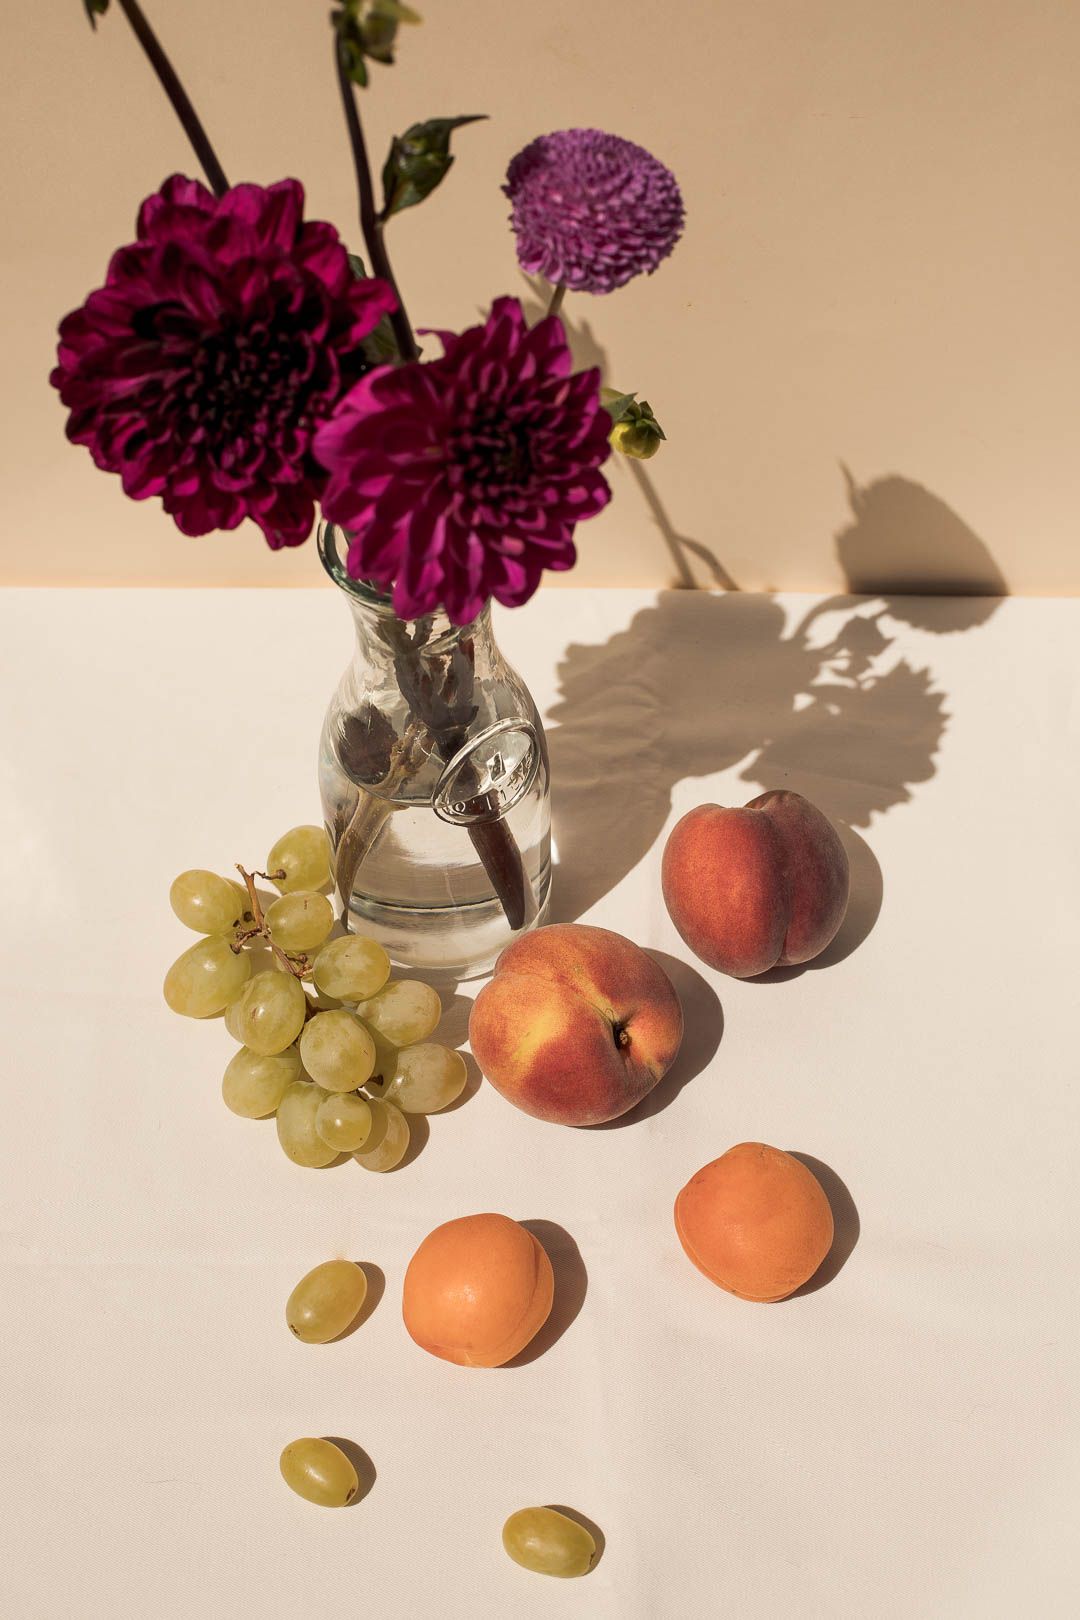 Summer fruit still life 2019 (18 of 32).jpg